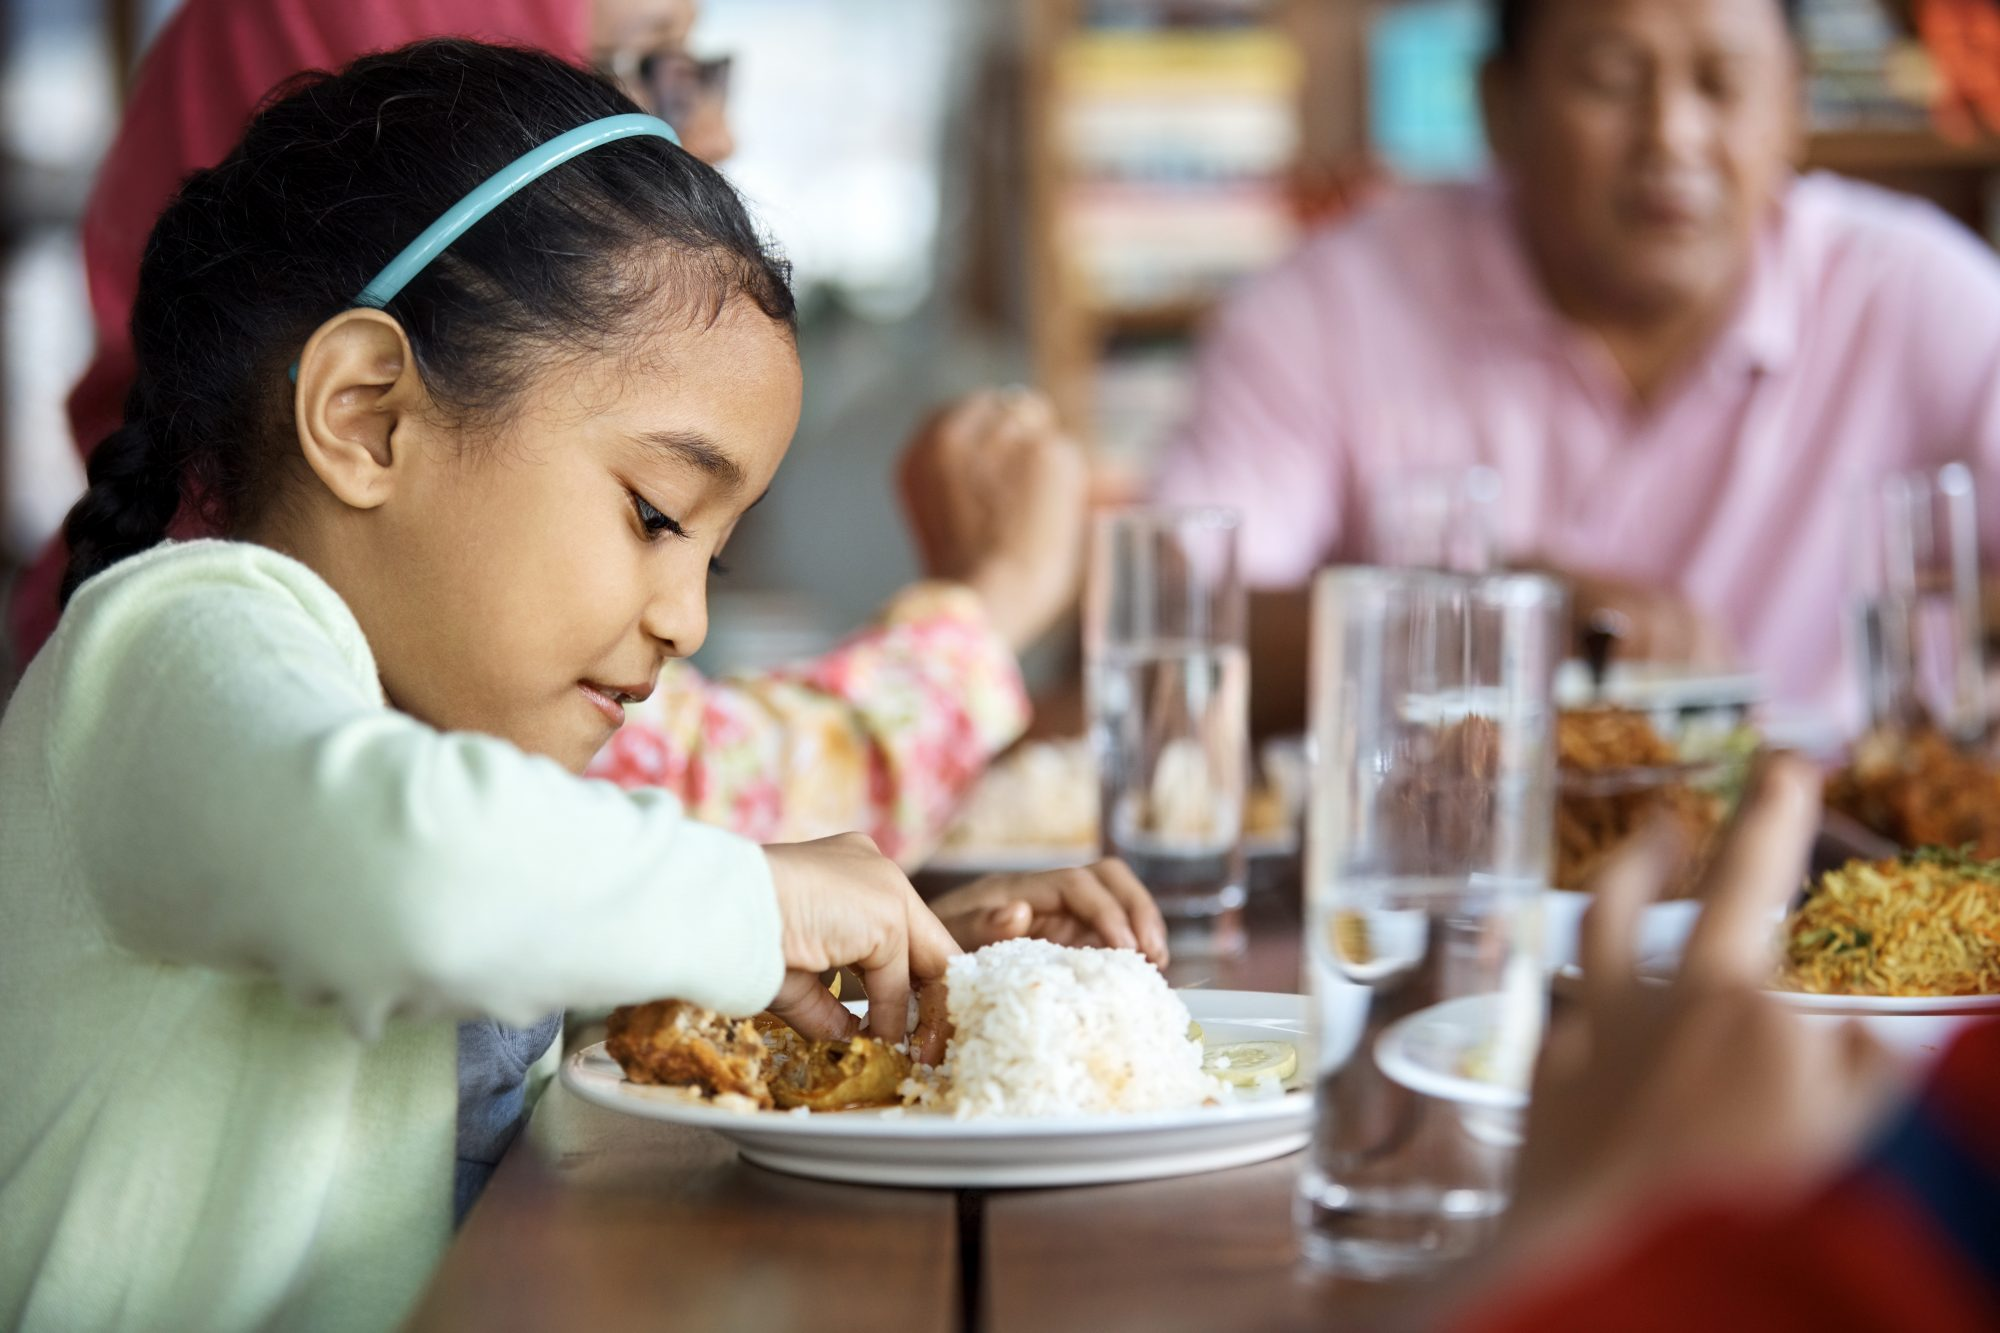 Kid Eating Dinner at Table